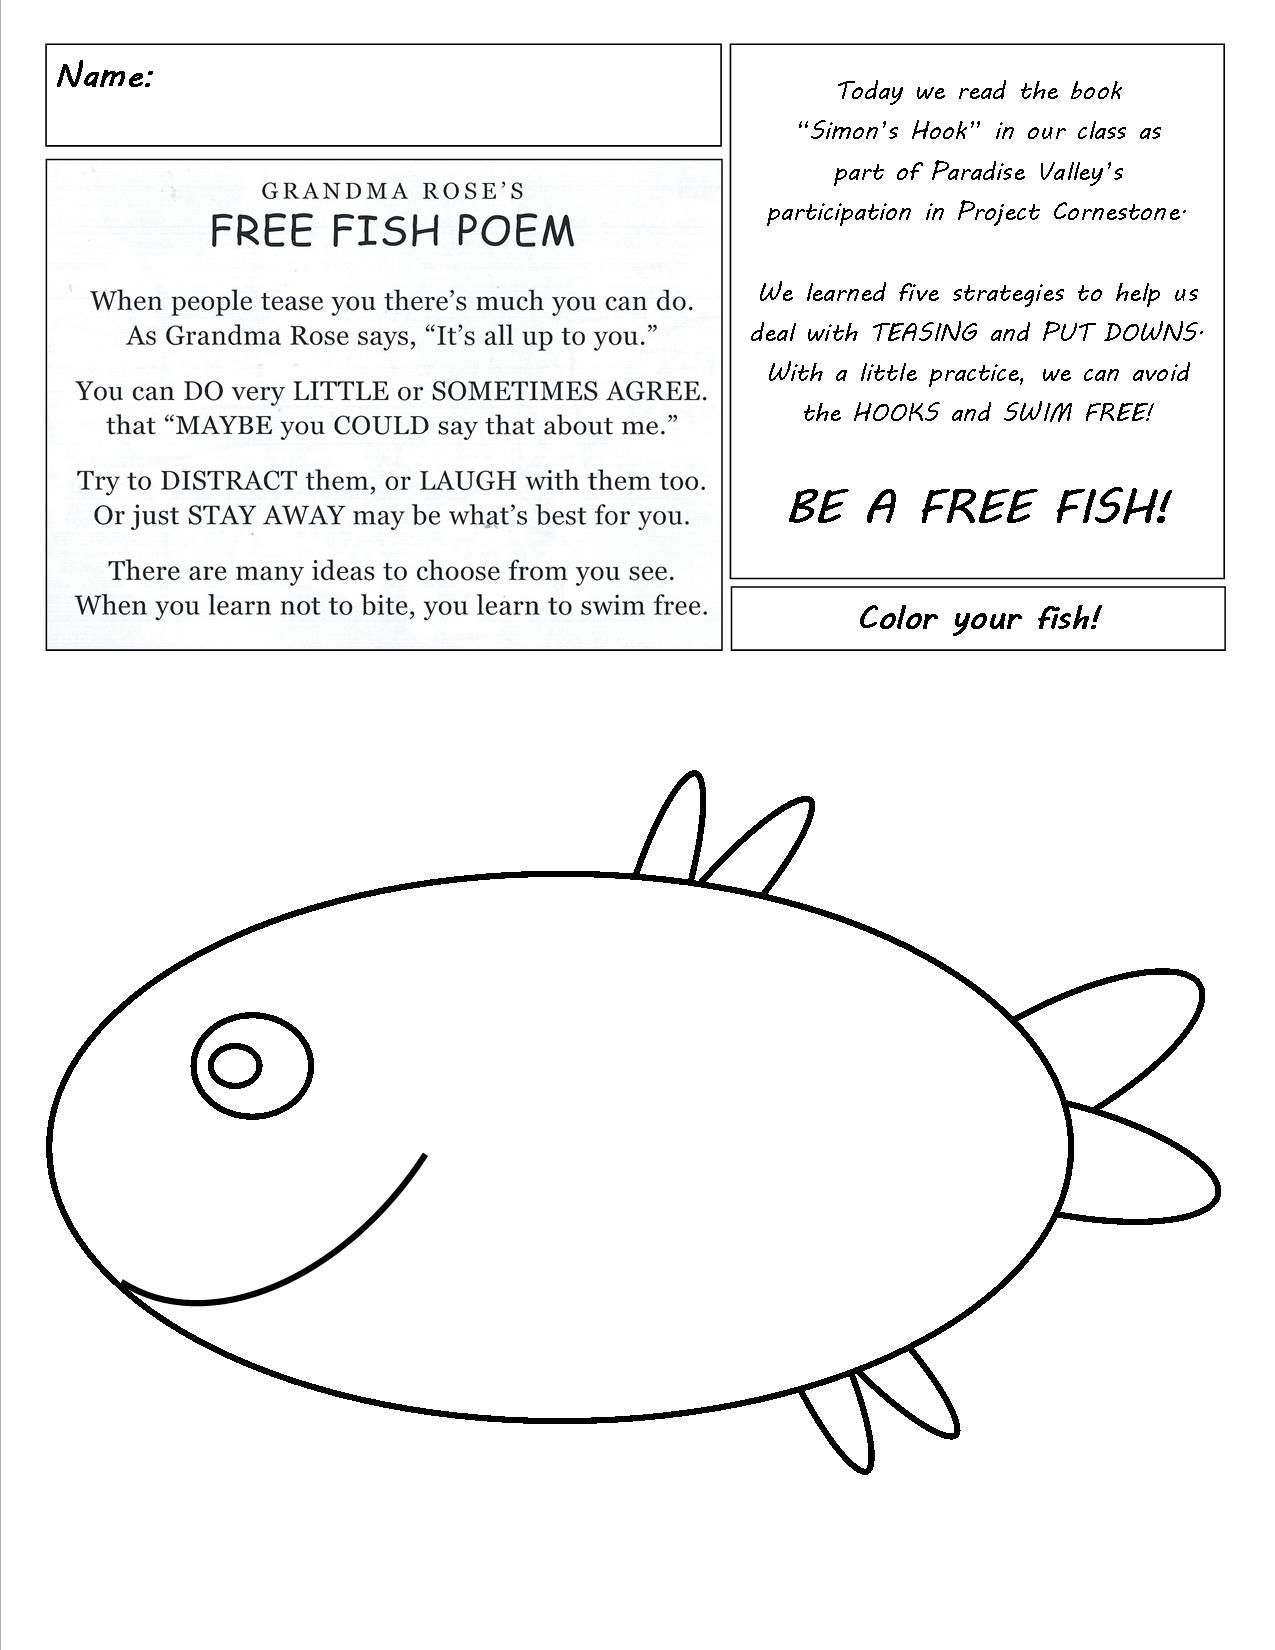 Simon S Hook Free Fish Poem Amp Coloring Page